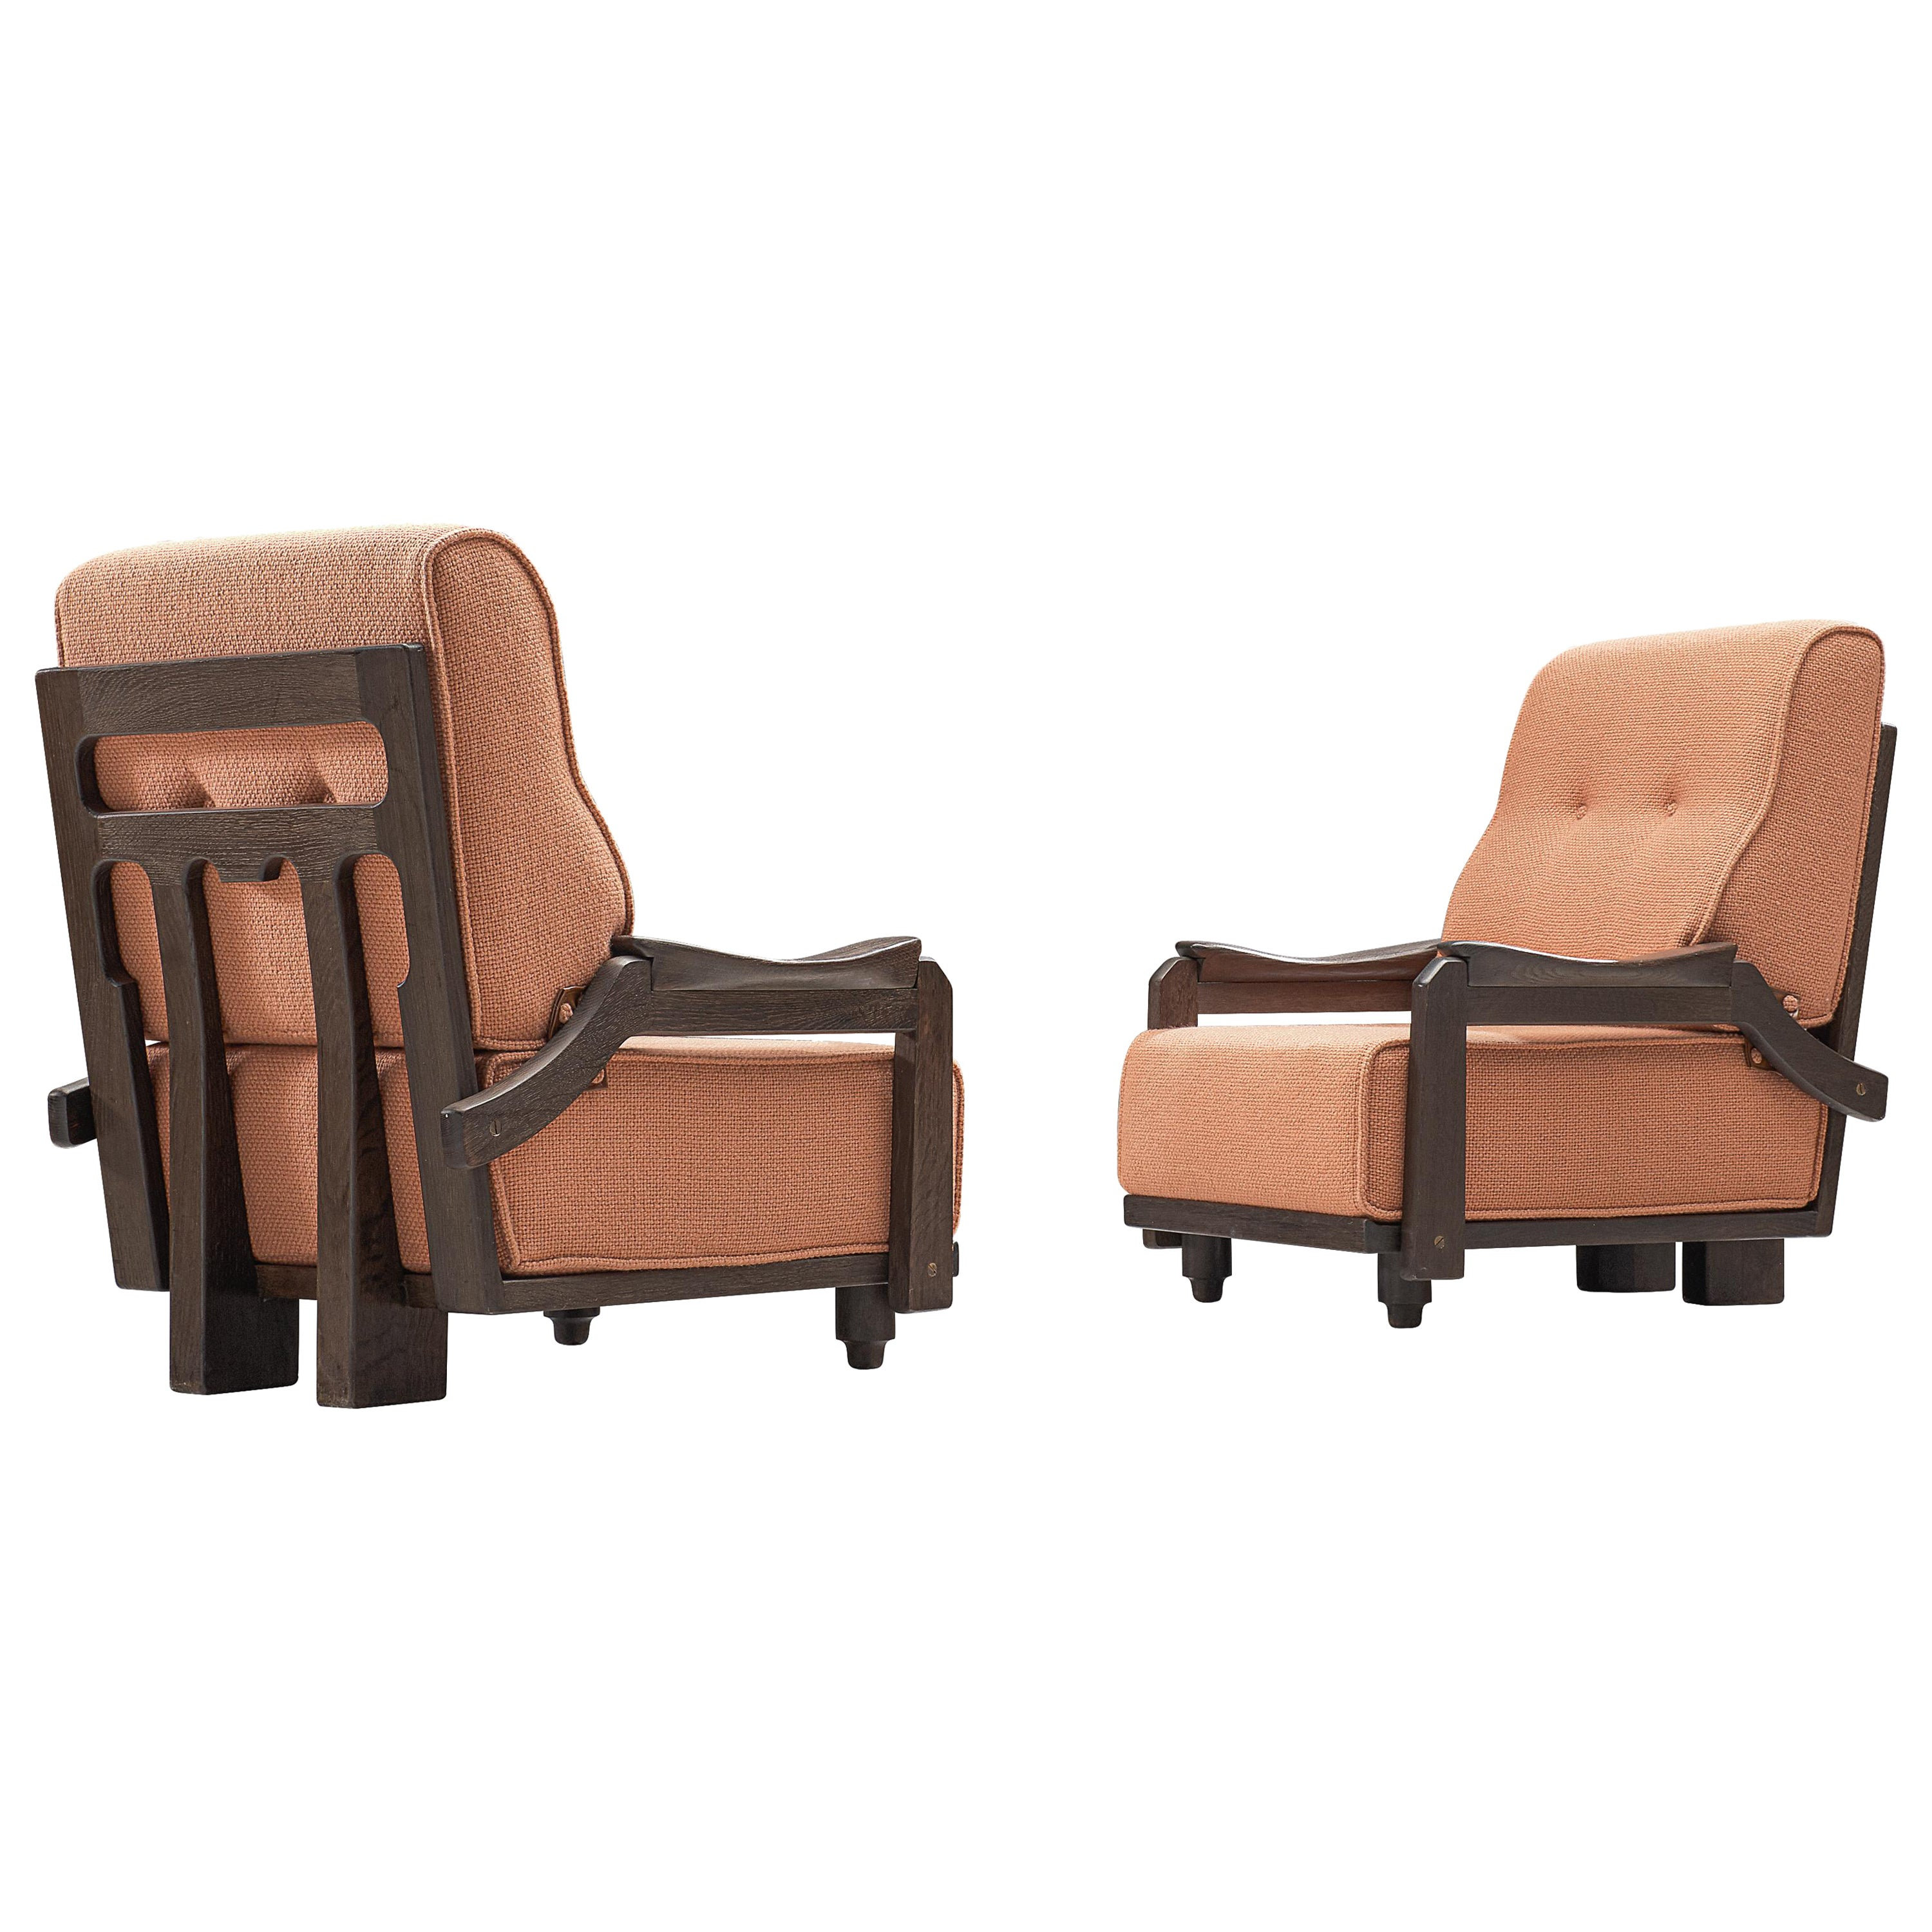 Guillerme & Chambron Pair of Lounge Chairs in Orange Upholstery